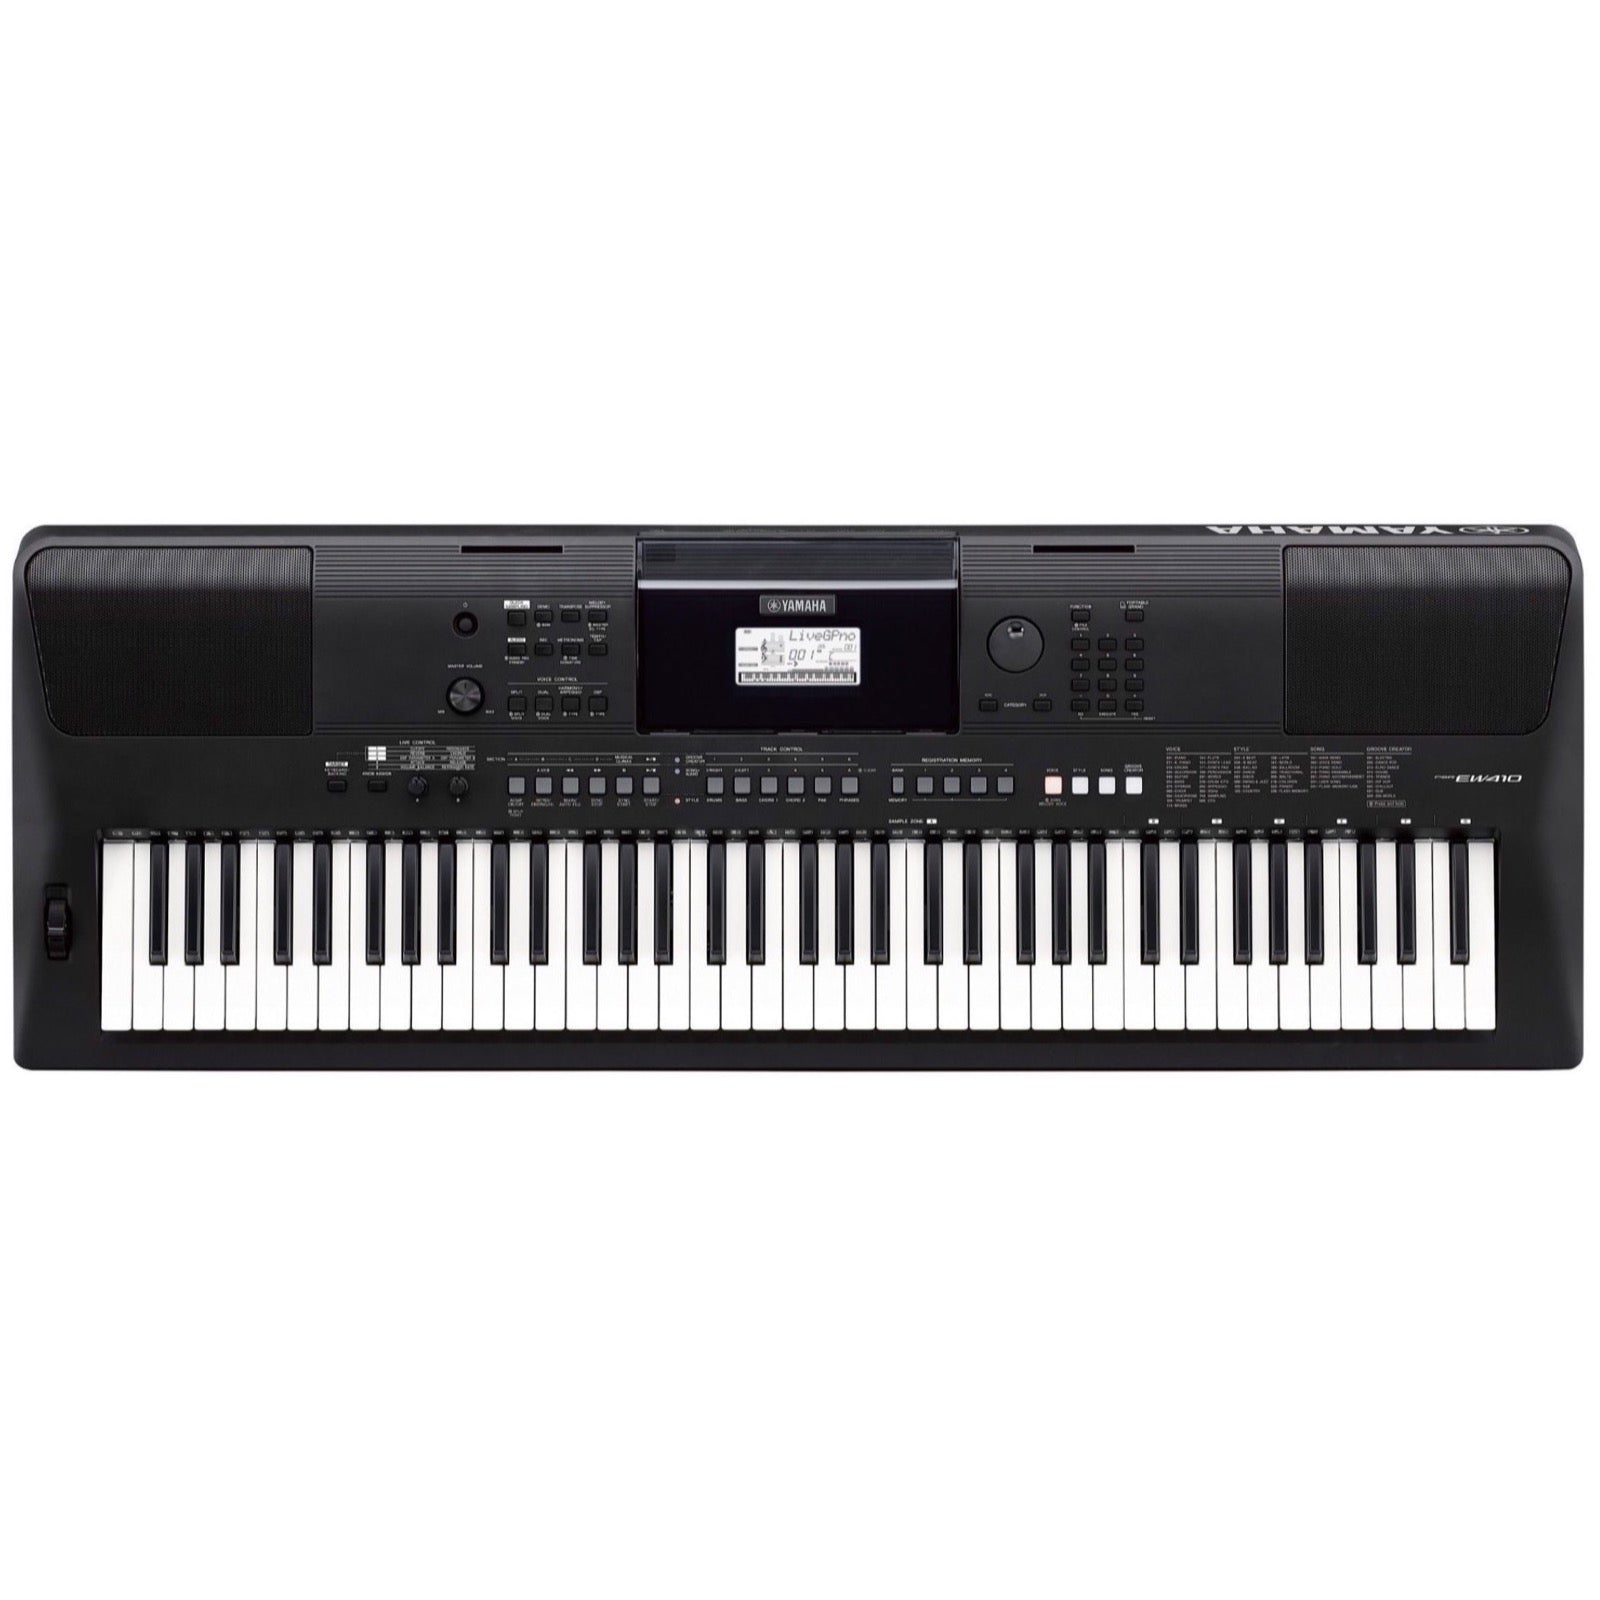 Yamaha PSR-EW410 Portable Keyboard, 76-Key, Education Pack, with X Stand, AC Adapter, and Headphones